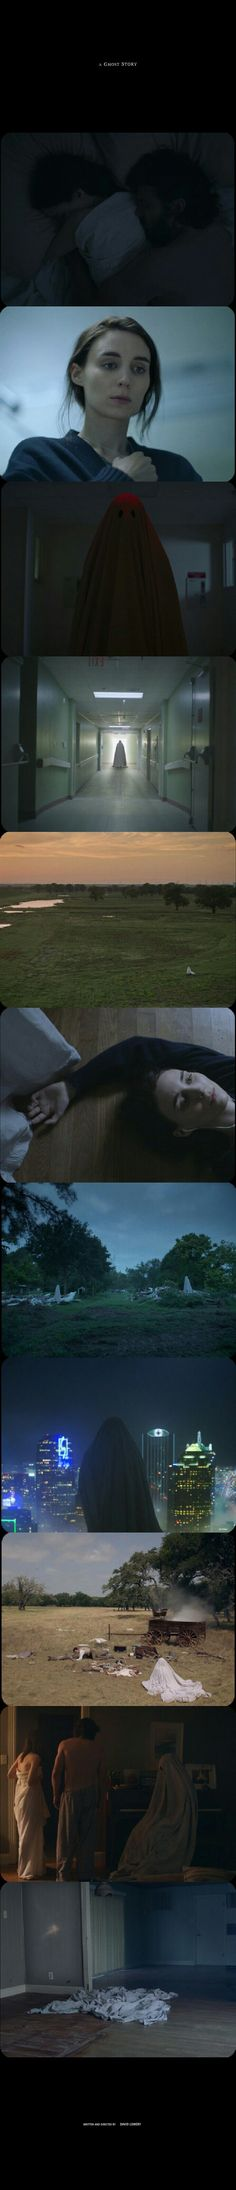 A Ghost Story (2017) Directed by David Lowery